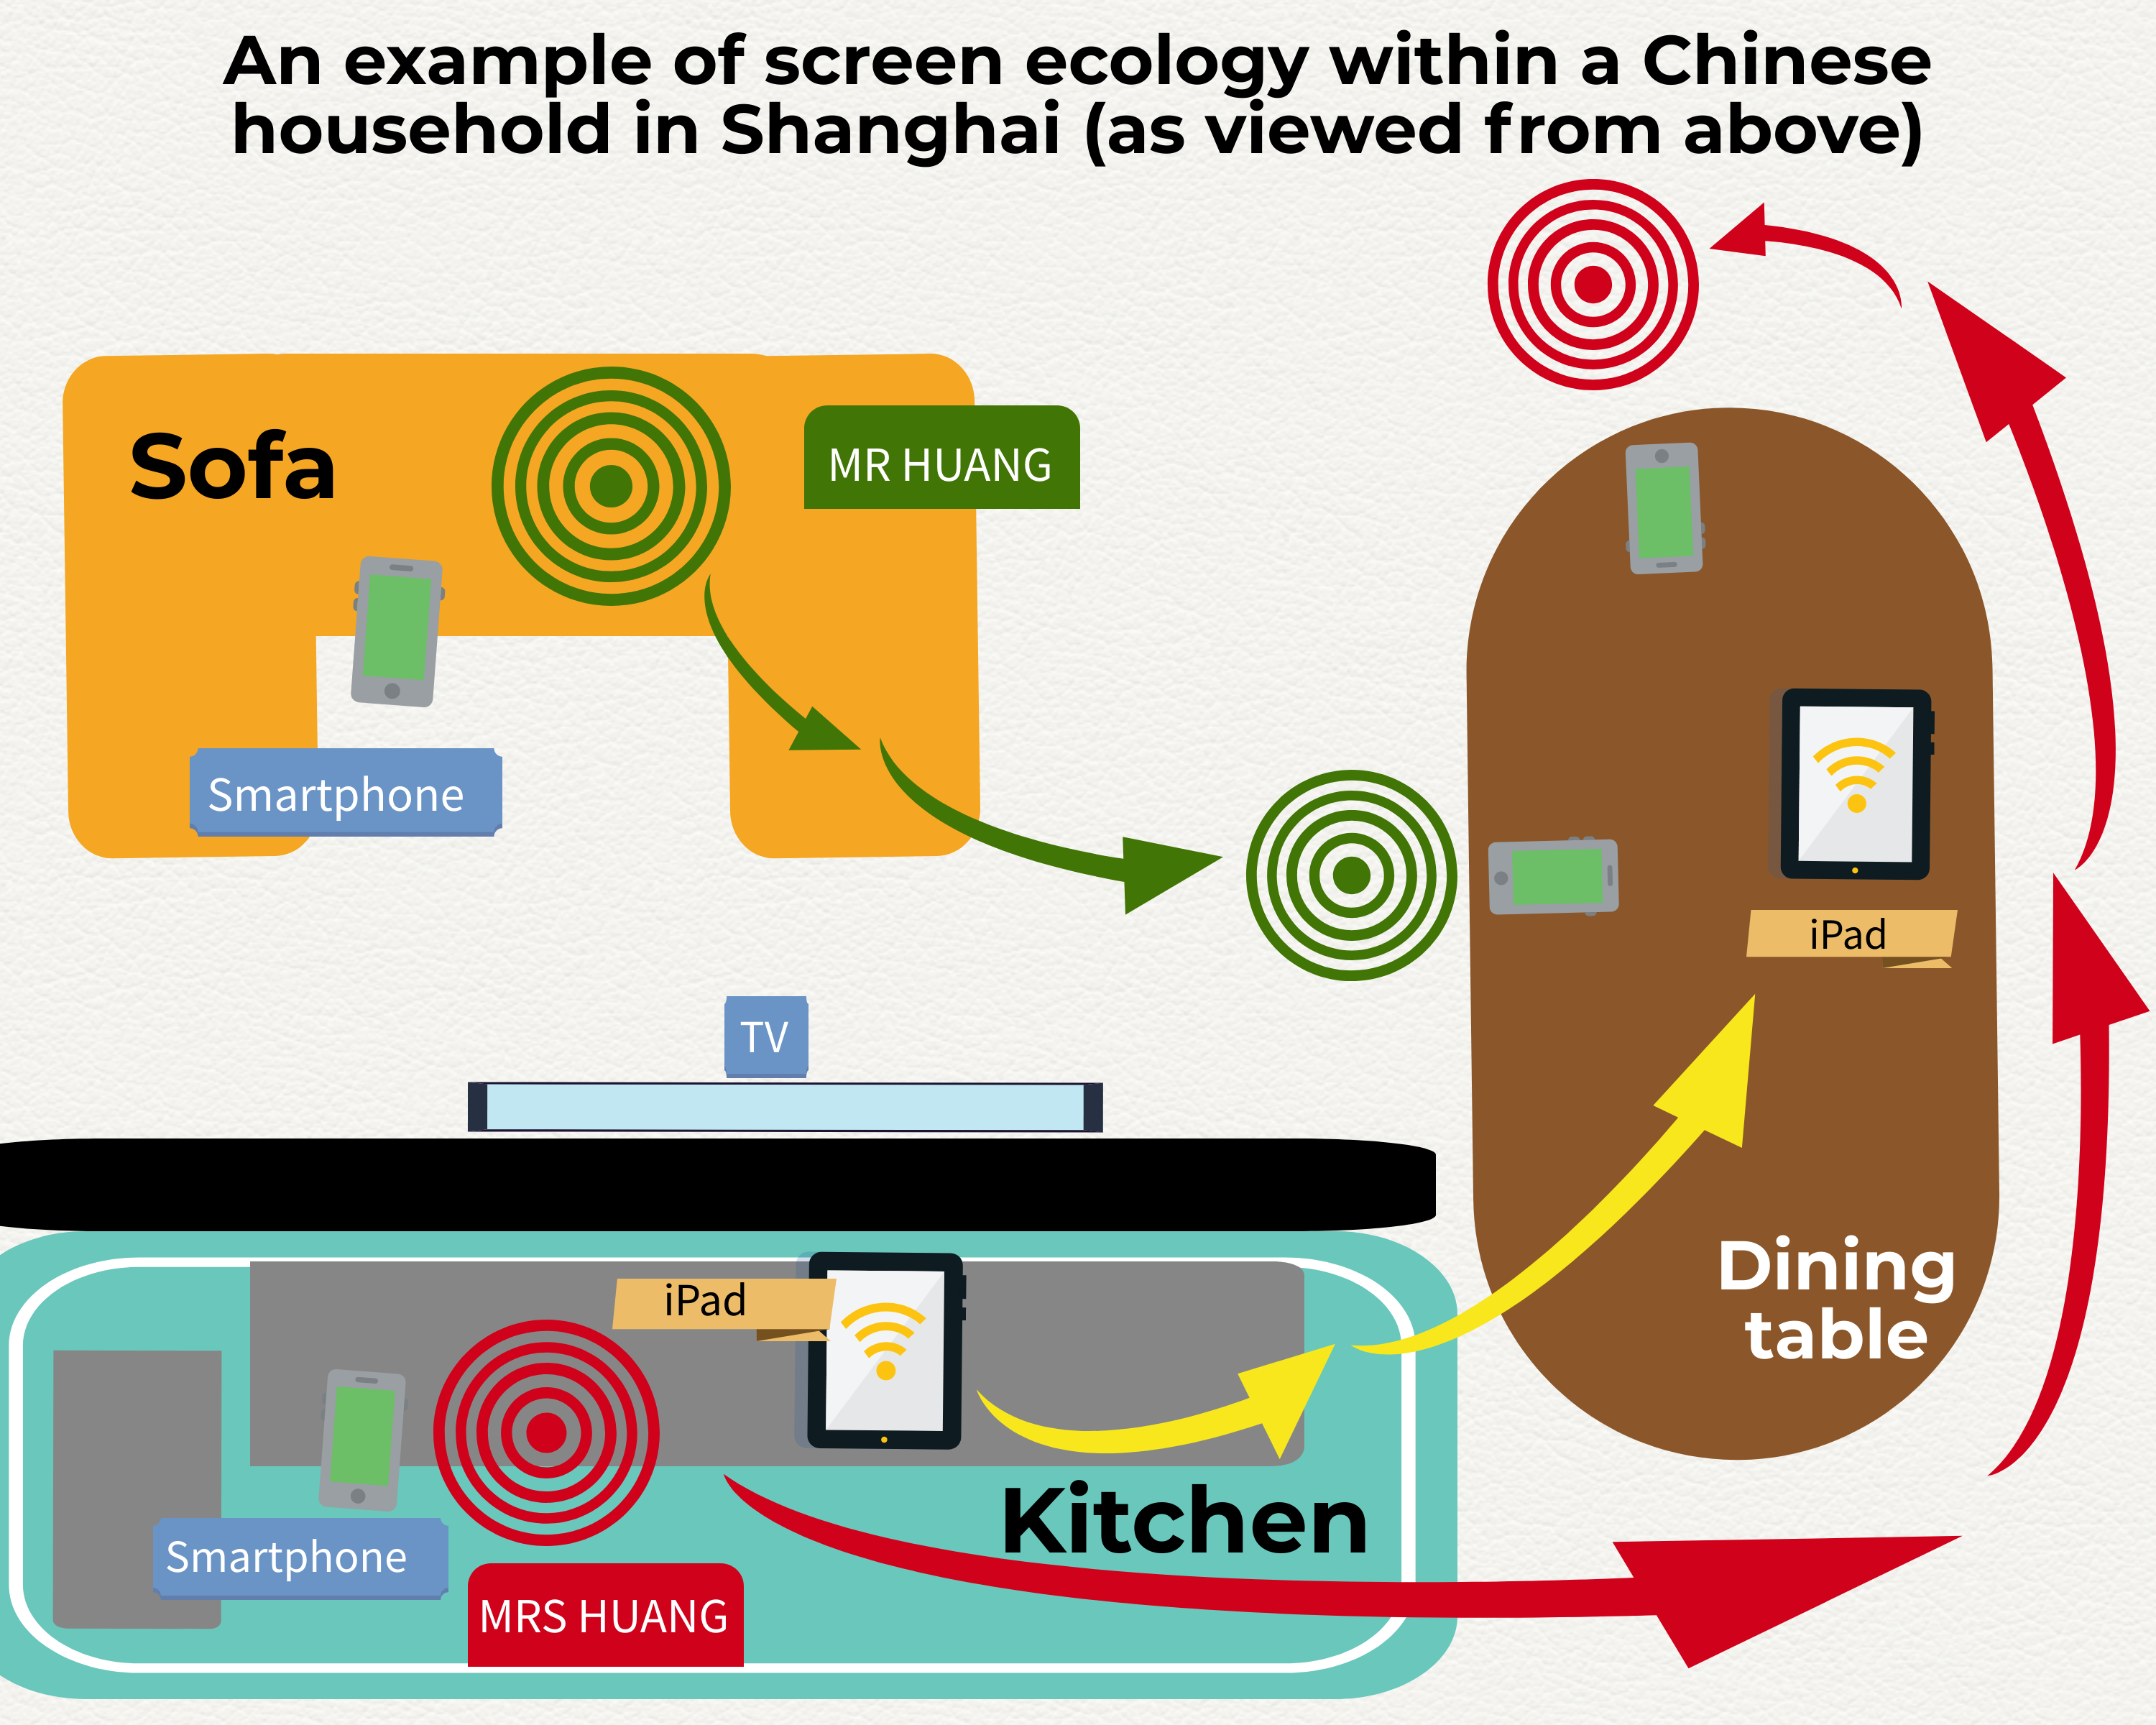 One of two coloured blueprints of two research participants' household in Shanghai China, which shows different items in their living room and kitchen as seen from above. The graphic is based on research by Xinyuan Wang. A smartphone is shown on the sofa being held by the husband, Mr Huang. Mr Huang's trajectory is then shown as follows: when he is called for dinner he will go to the dinner table, with his smartphone, as signified by dynamic arrows showing his path. His wife Mrs Huang is already at the dinner table with her own smartphone. Her trajectory, also signified through dynamic arrows, is that she has come from the kitchen to the dining table to have dinner. In the kitchen she had an iPad that she uses to speak to her grandson who lives in another city. The TV is also shown as being in front of the sofa. All this movement shows the different relationships between screens within this household.